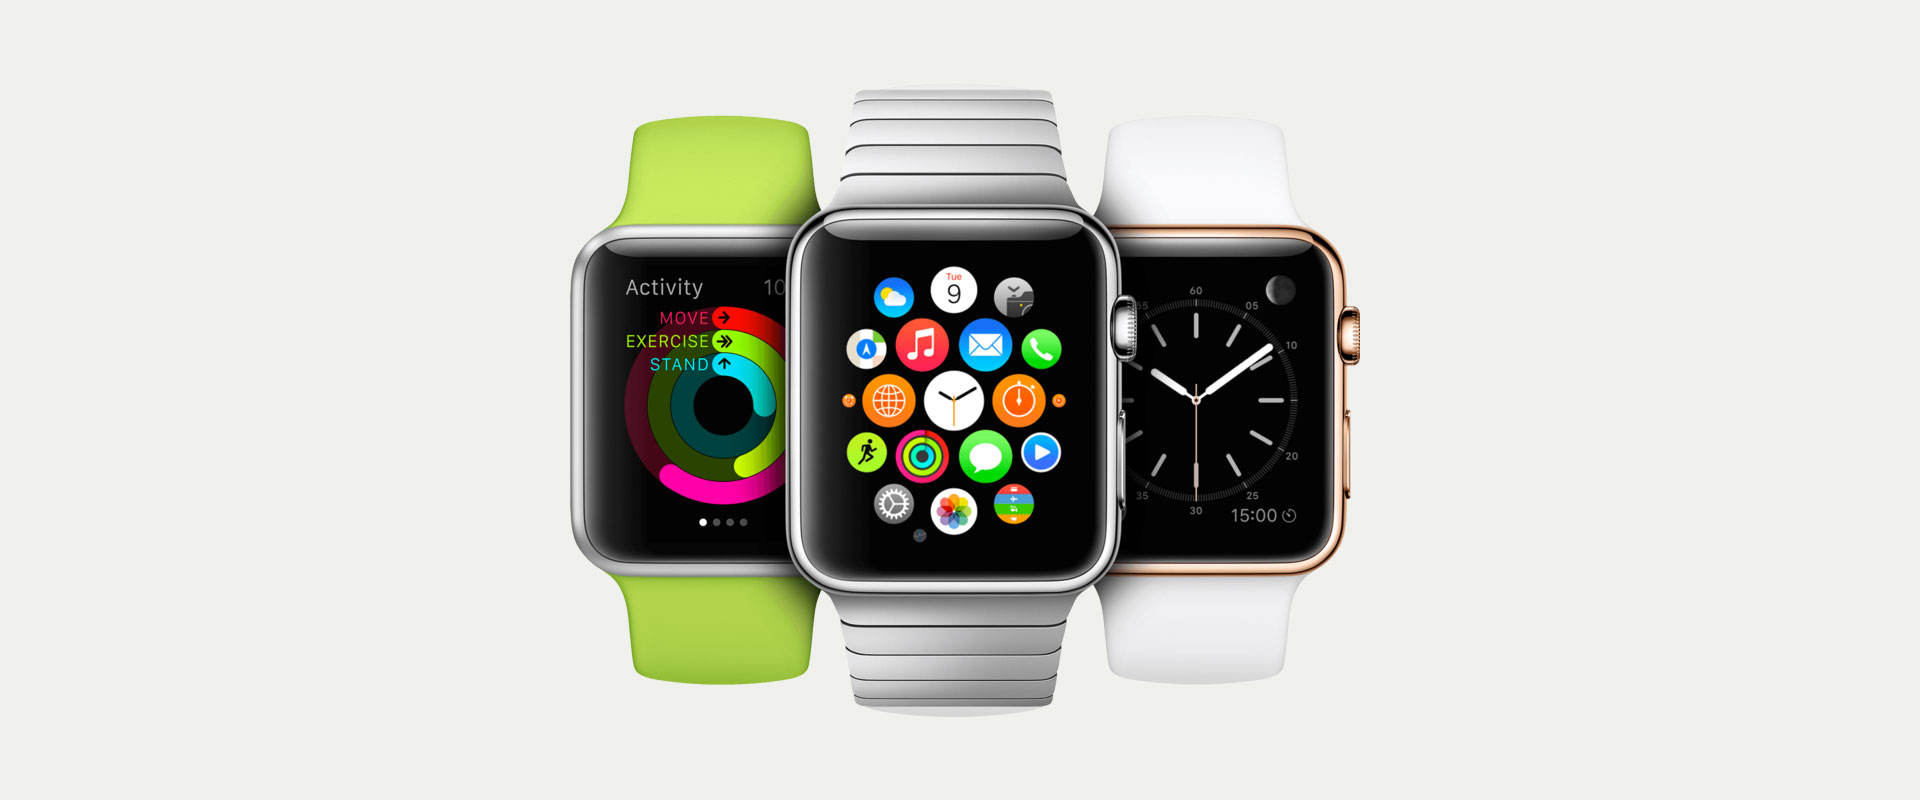 apple-watchos3-activity-sharing